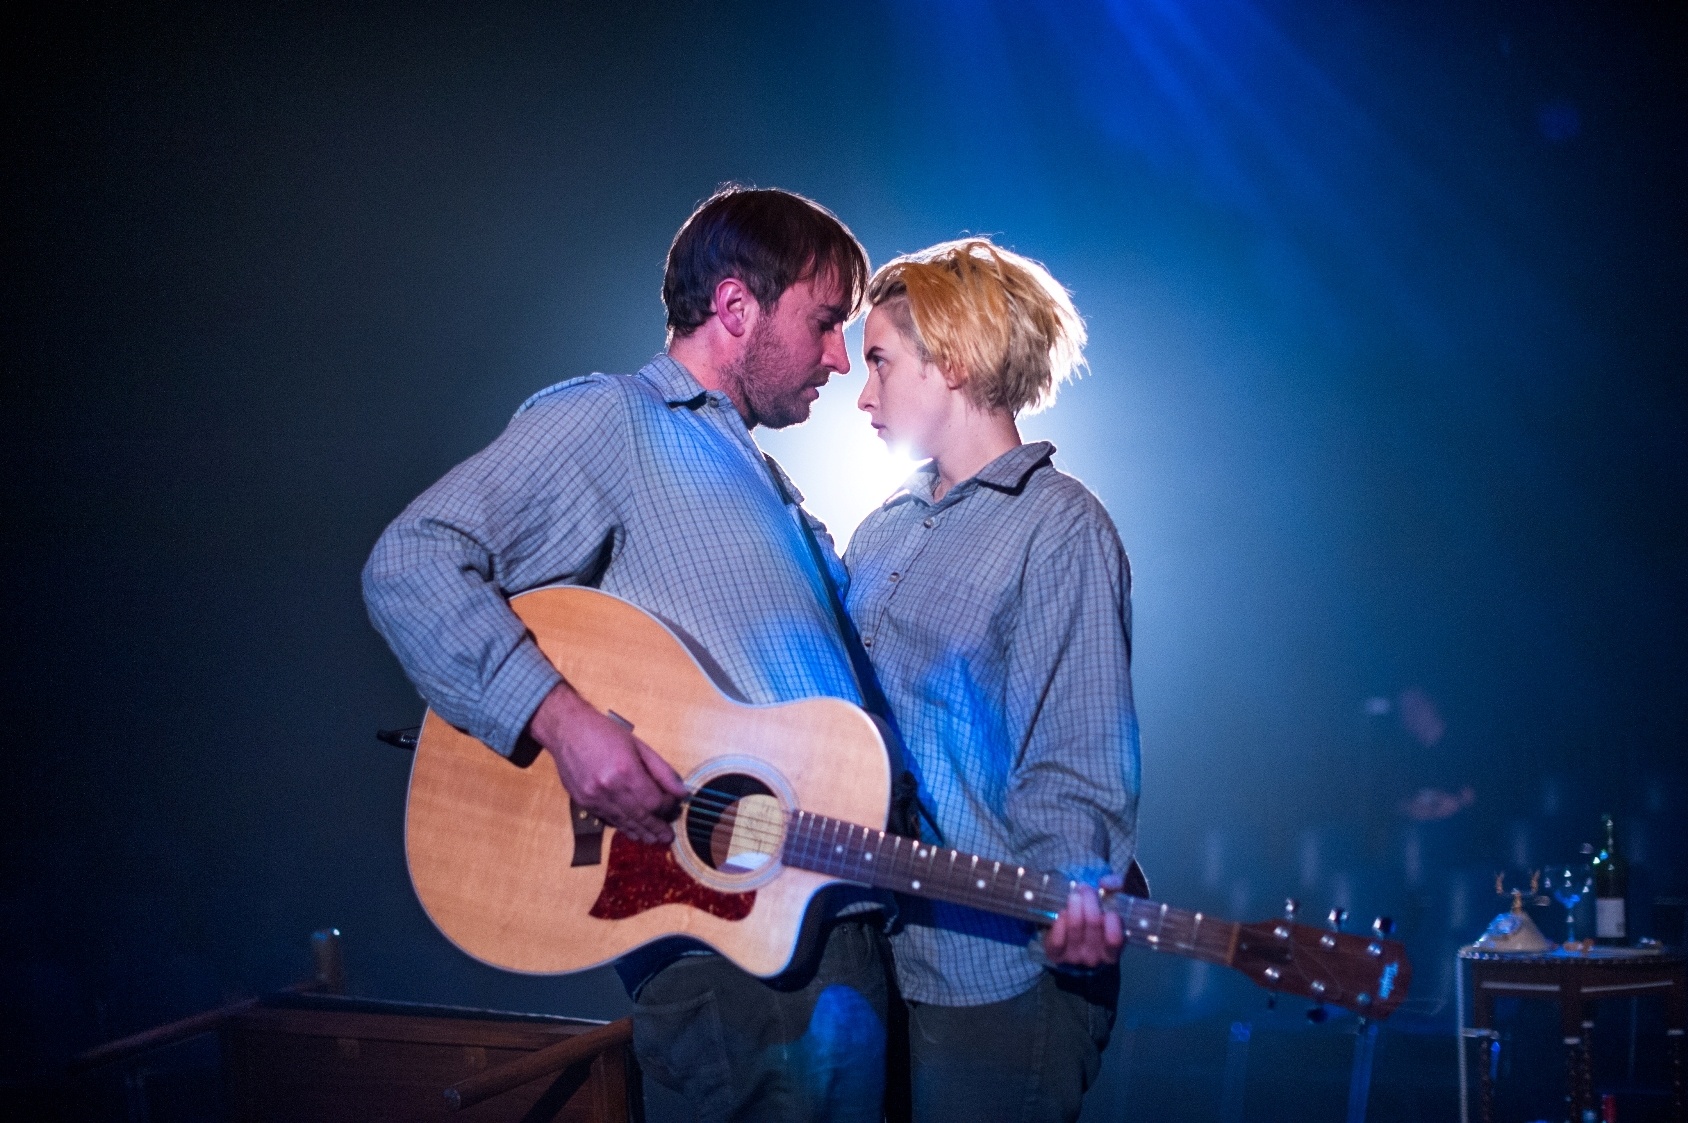 Ewan Donald as Beane and Sarah Swire as Molly in Love Song.